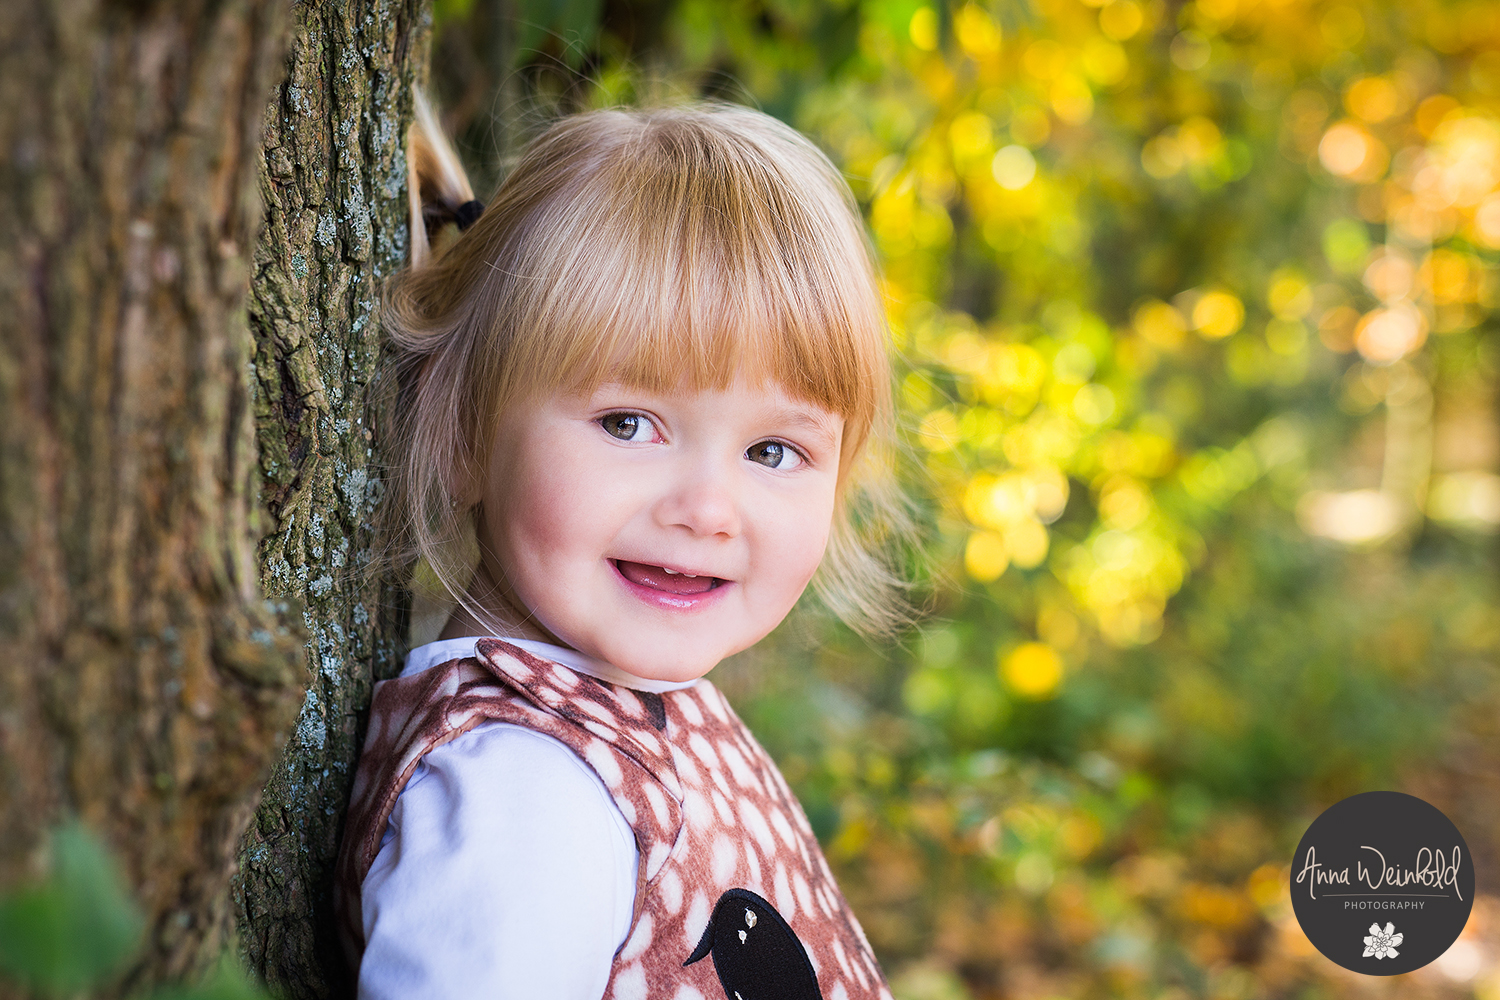 Anna-Weinhold-Photography_Kindertreff_Bielert_0222_Name